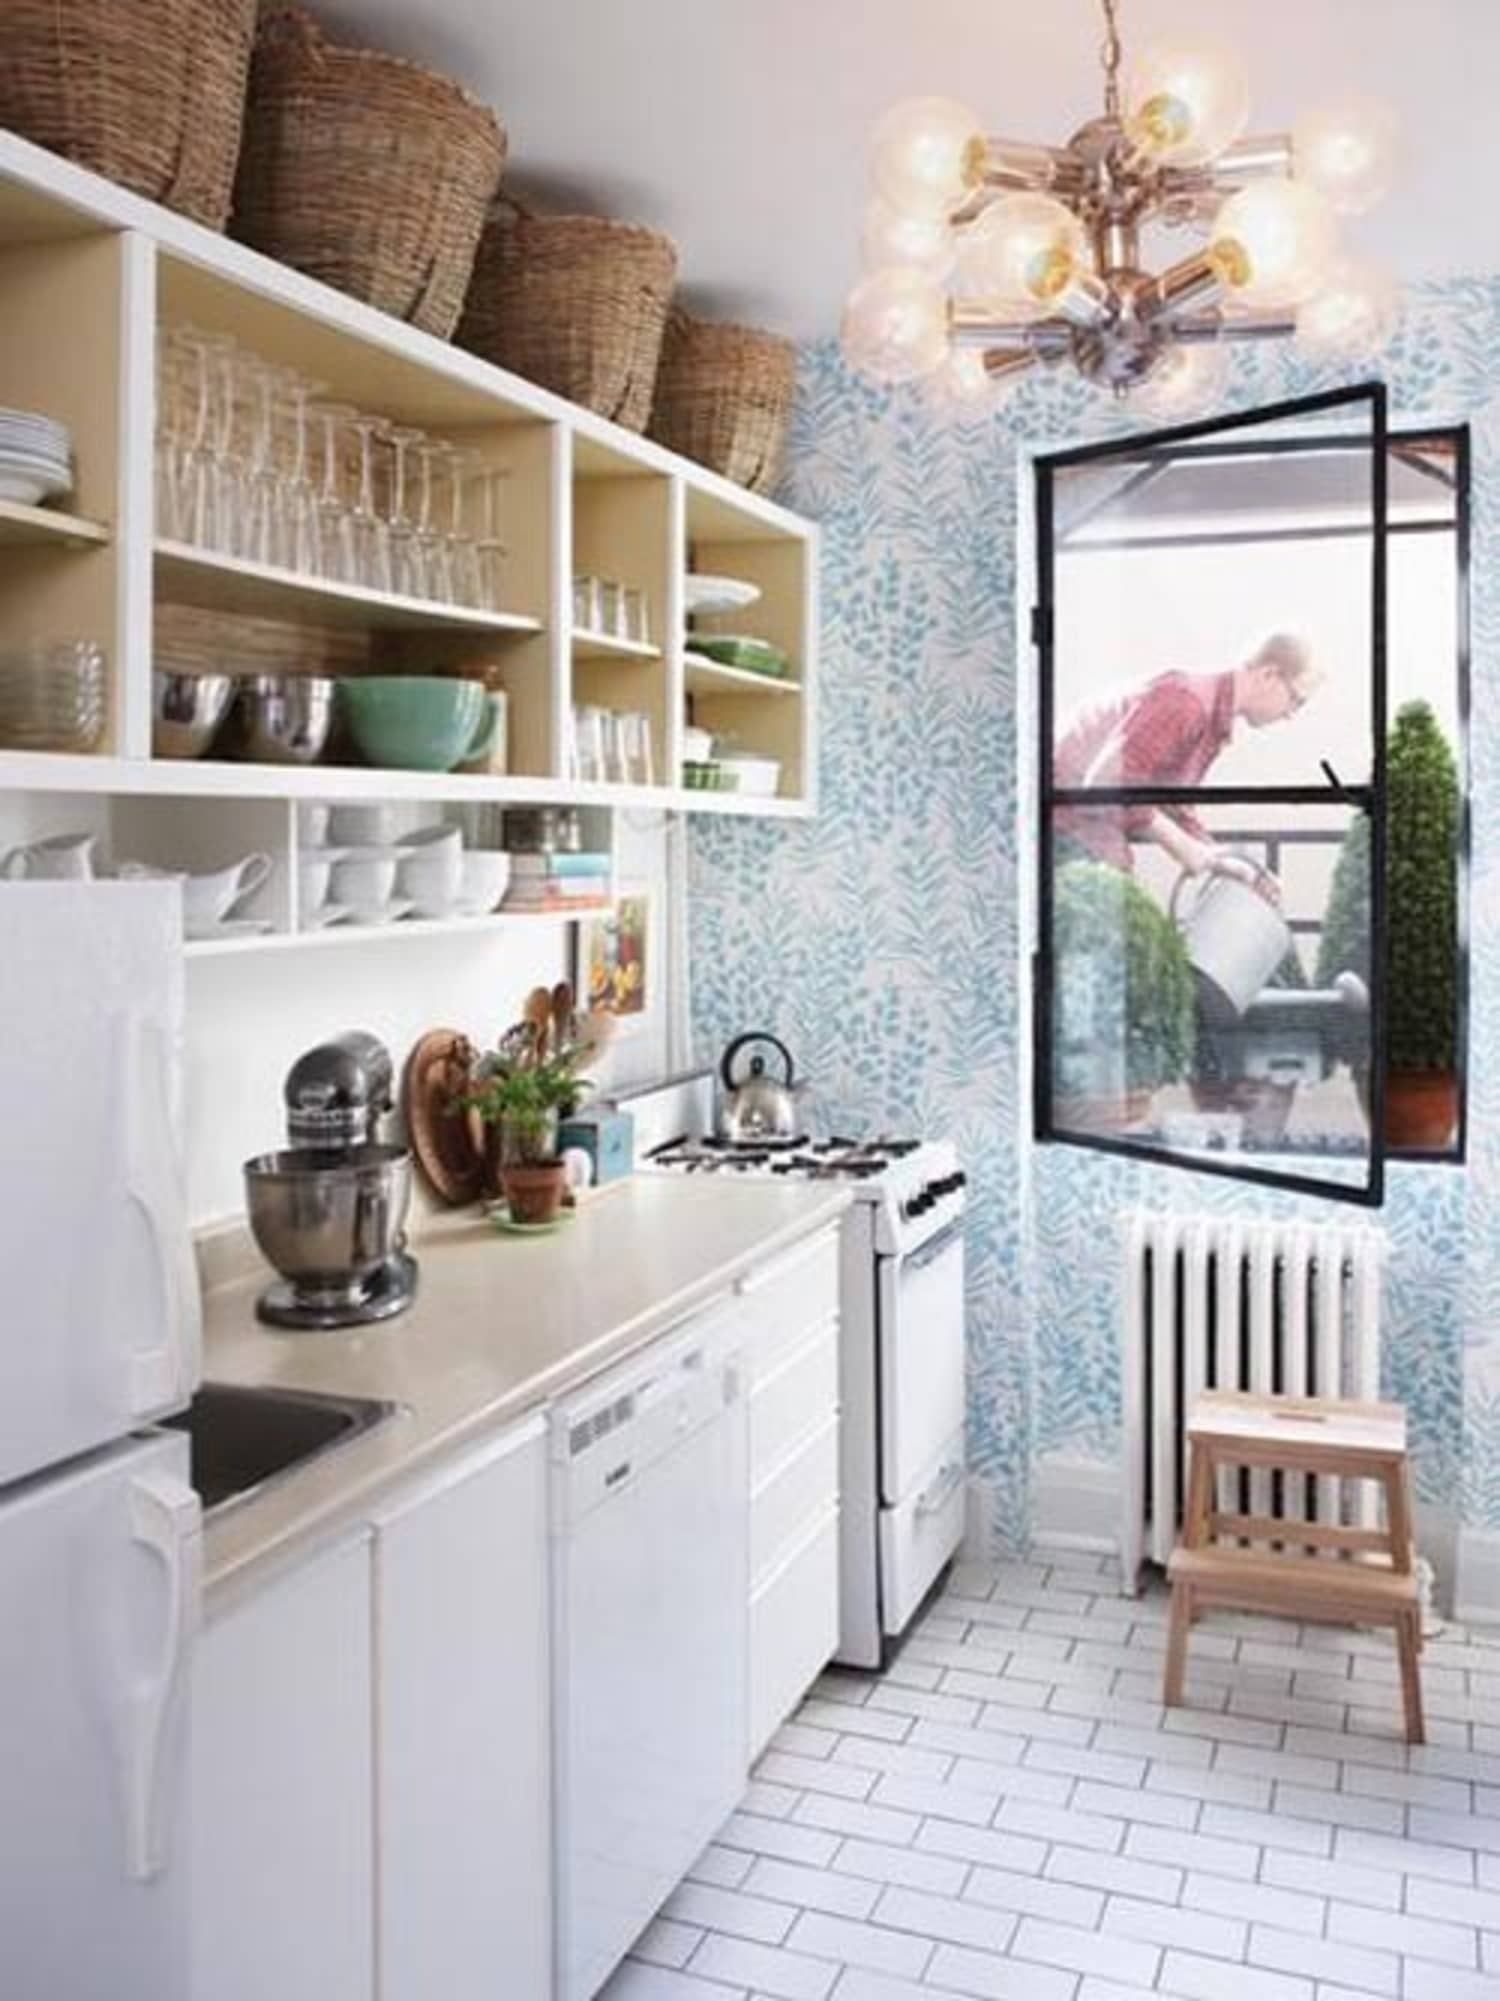 Small Kitchen Storage: Put Baskets Above the Cabinets! | Kitchn on dead space above kitchen cabinets, empty space above stairs, empty space in bathroom above, blank space above kitchen cabinets, wasted space above kitchen cabinets, void space above kitchen cabinets, empty space above kitchen sink, empty space above fireplace, empty space above refrigerator, open space above kitchen cabinets,